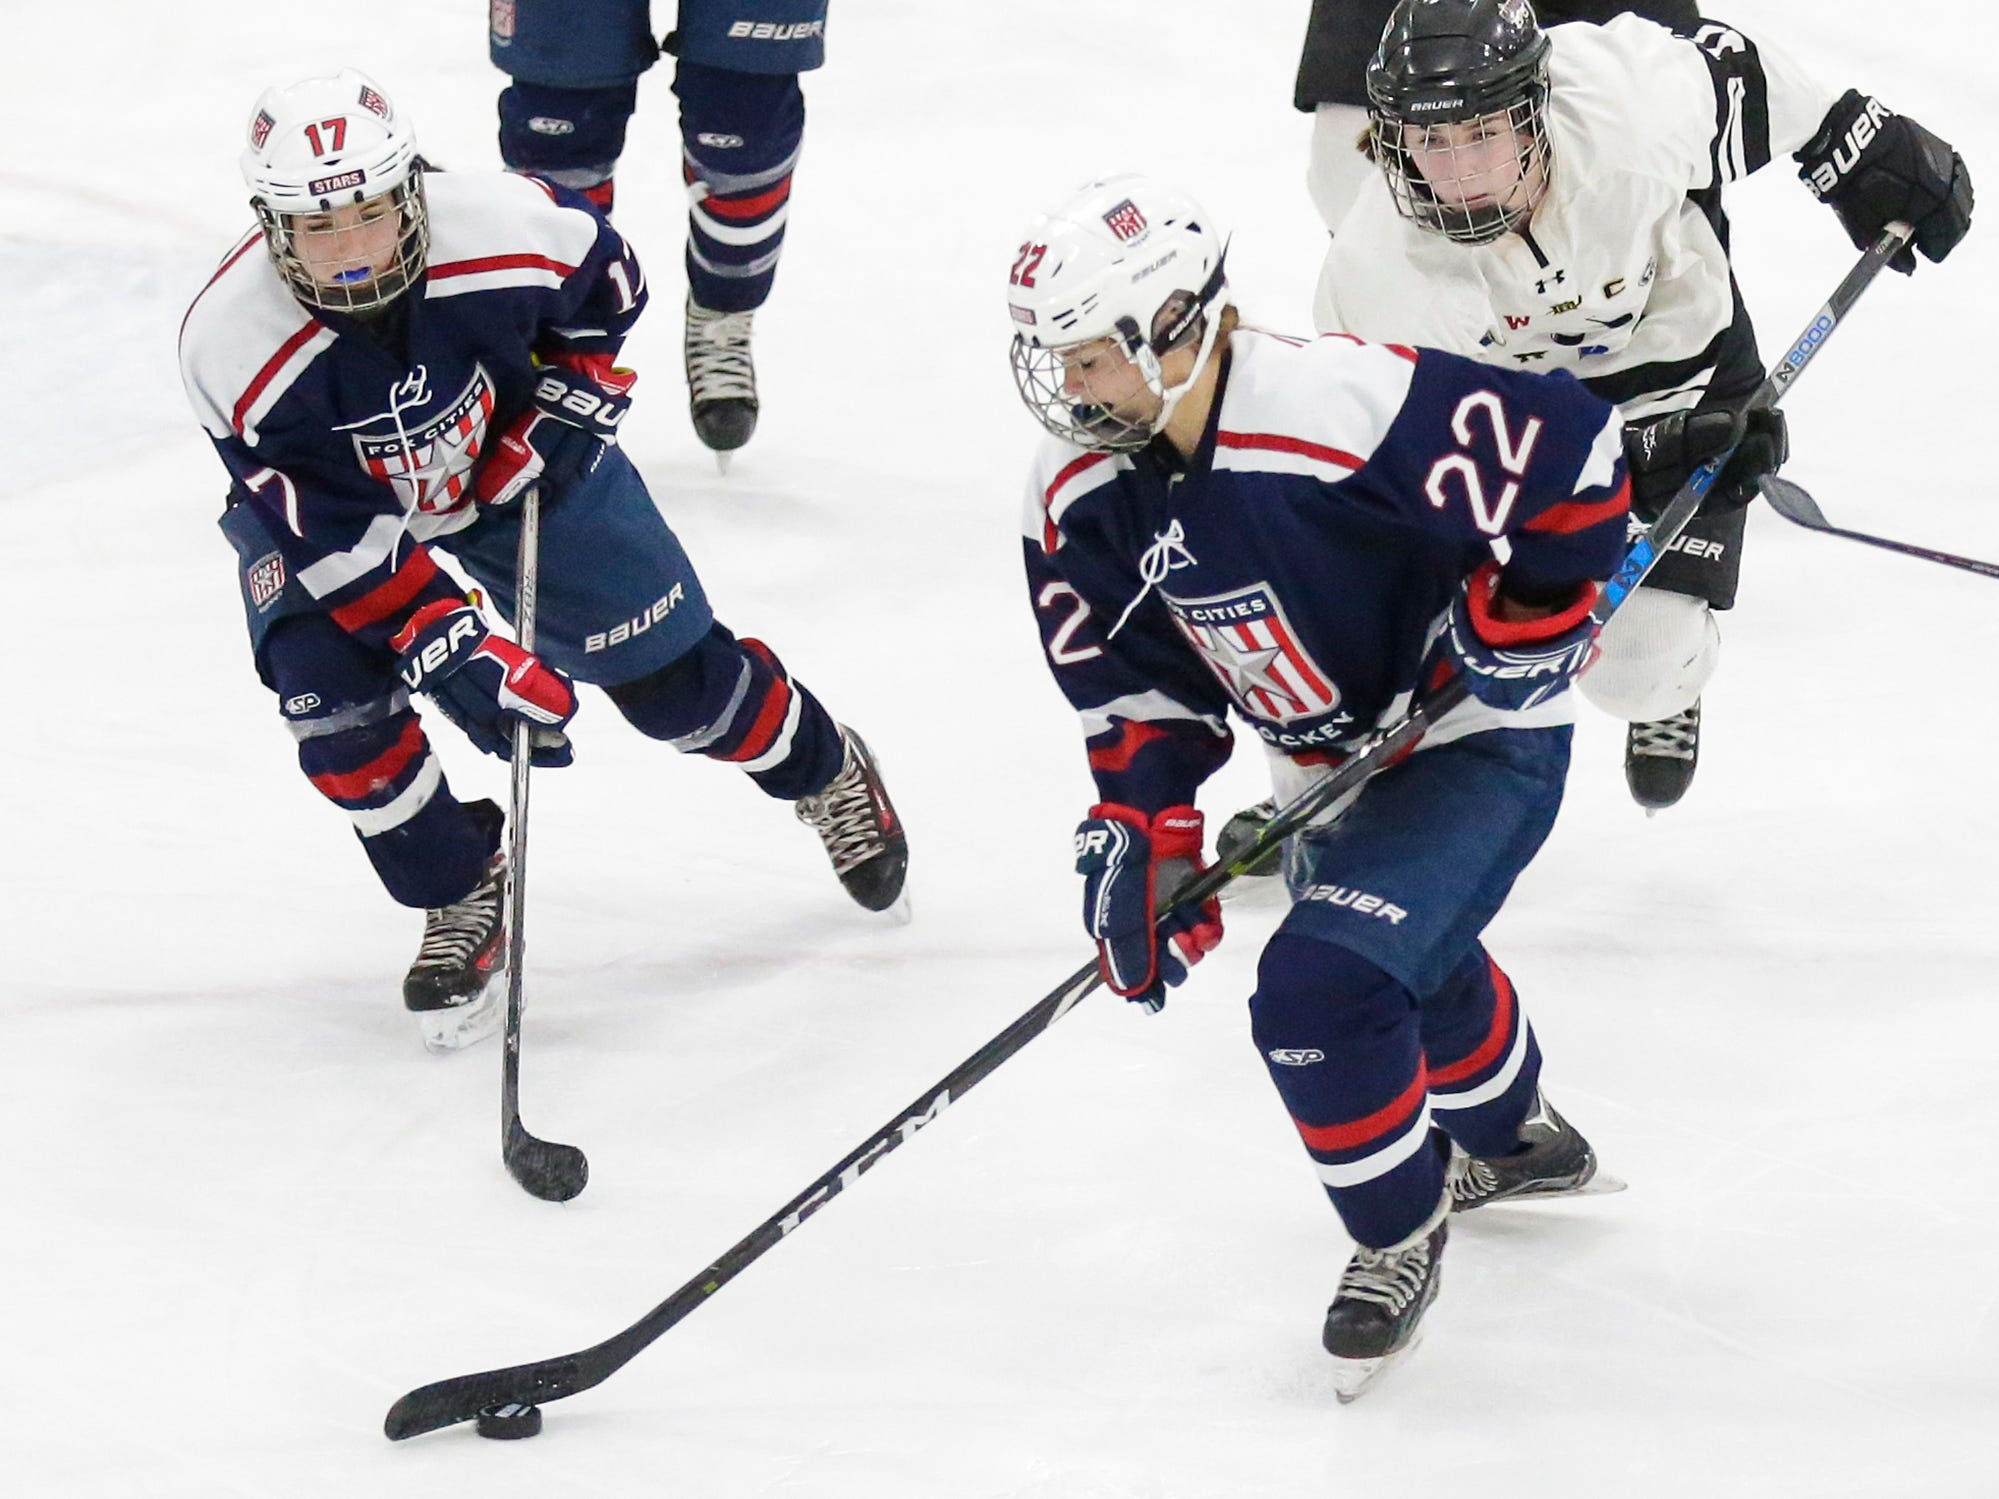 Fox Cities Stars girls hockey's Riley Maulick (22) moves the puck with Morgan Treml (17) and Beaver Dam Alliance's Morgan Brown (11) right behind Friday, February 22, 2019 during their WIAA sectional final game in Fond du Lac. Fox Cities Stars won the game 5-2 and will advance to state. Doug Raflik/USA TODAY NETWORK-Wisconsin